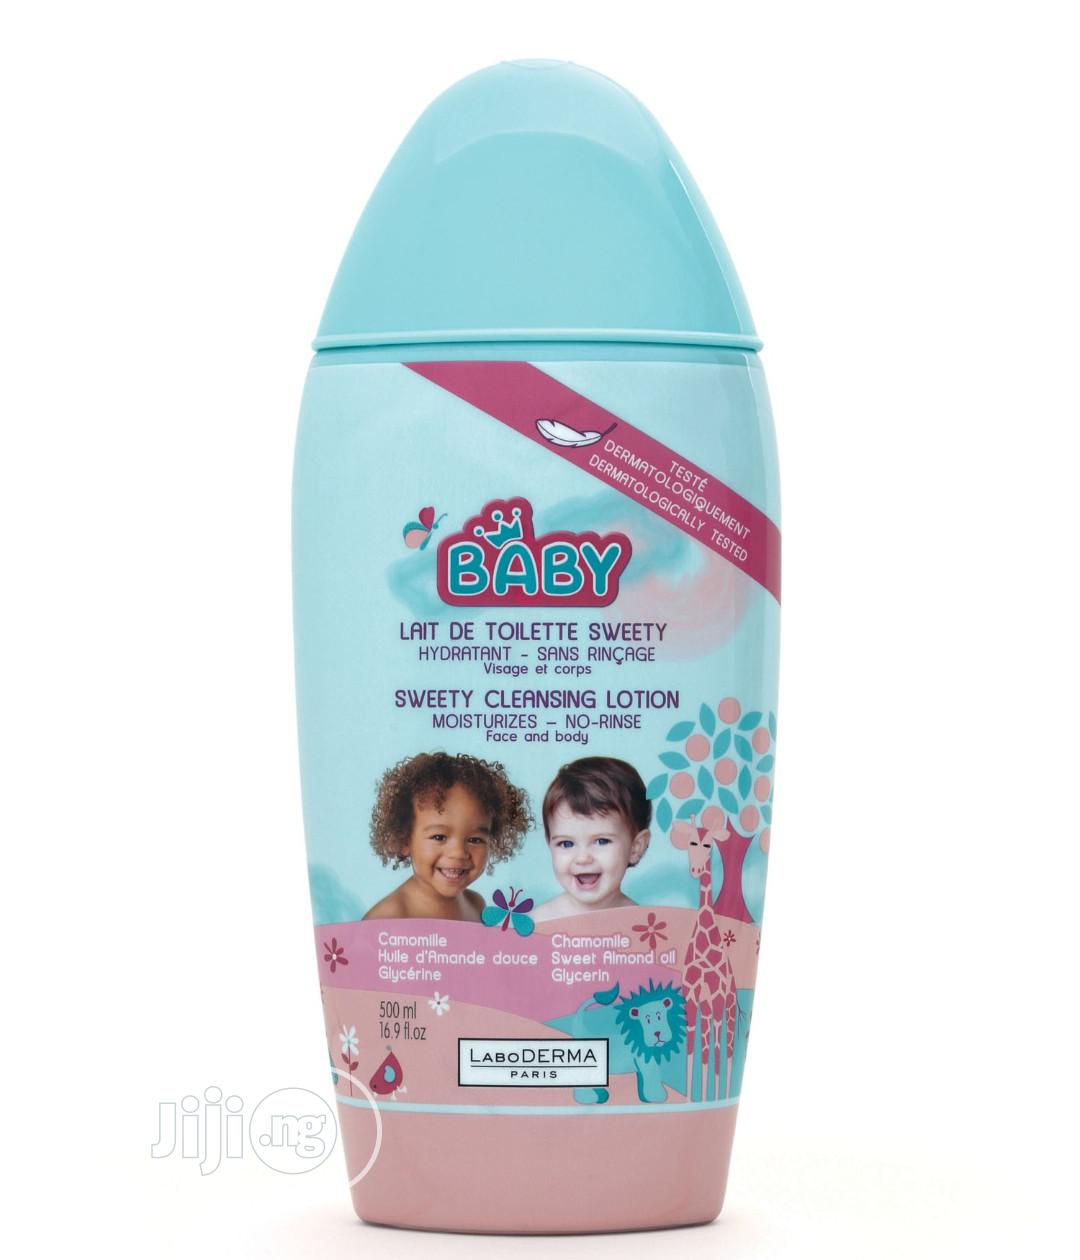 Sweety Baby Cleansing Lotion